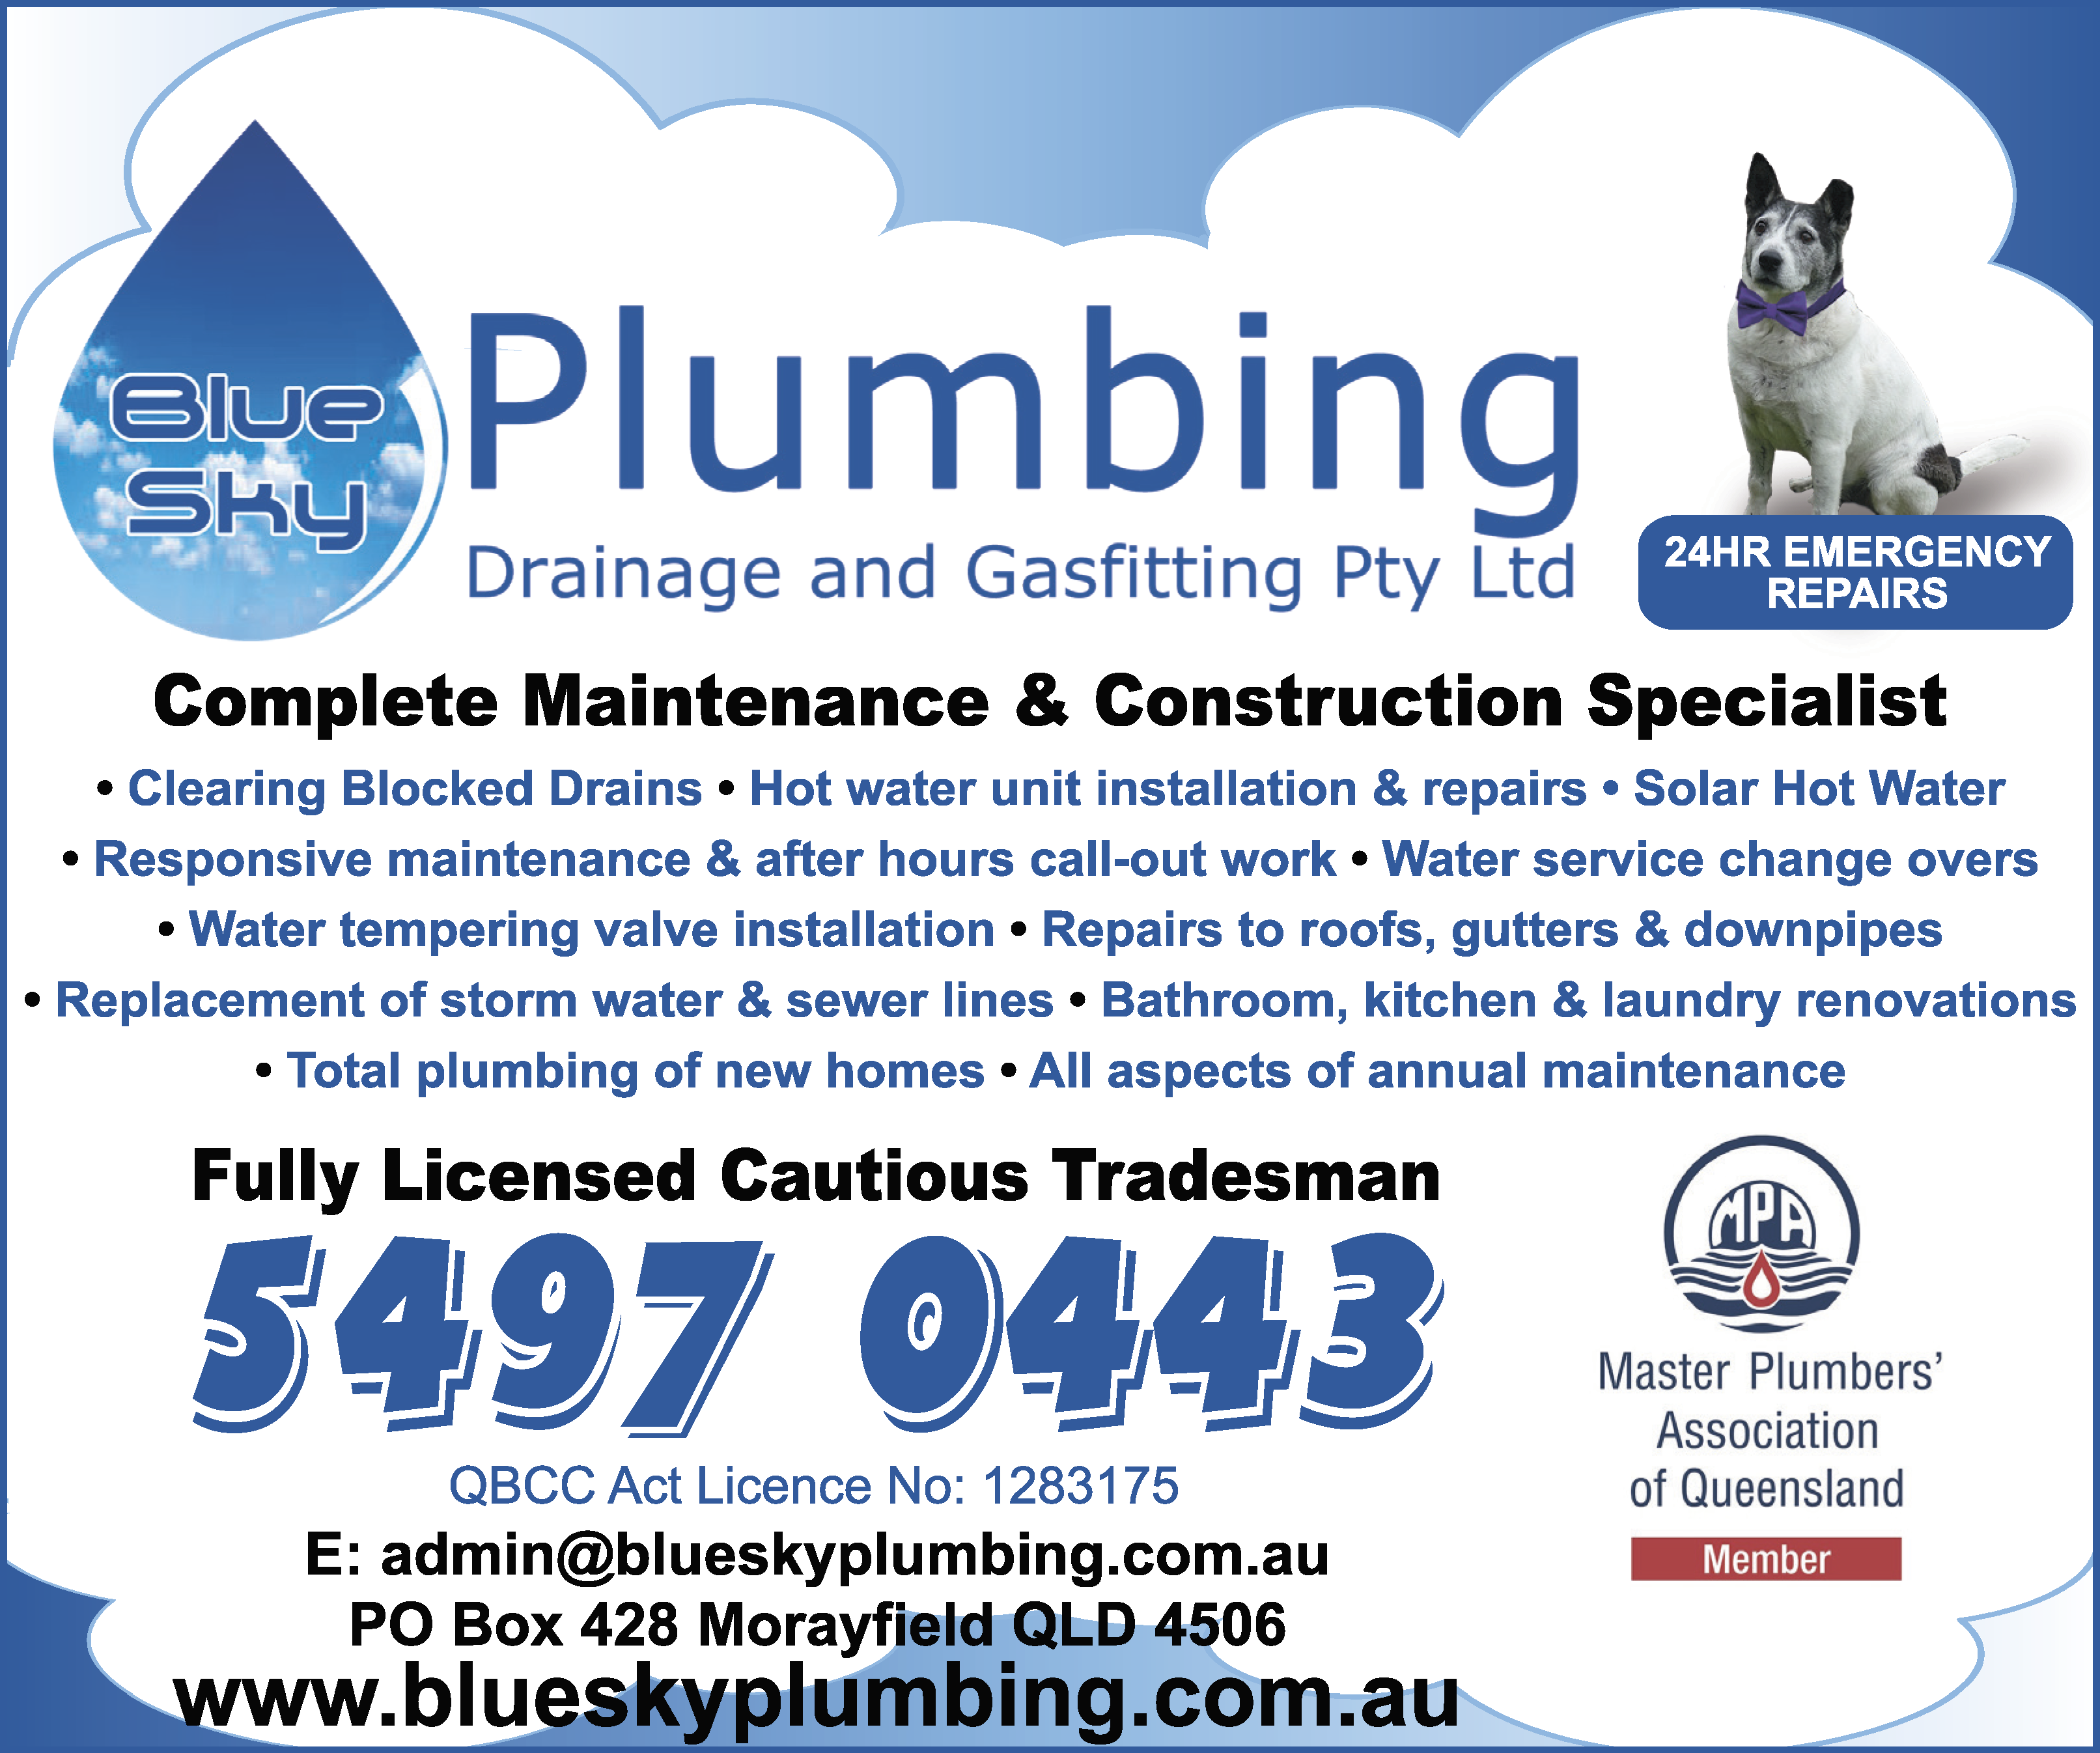 Blue Sky Plumbing Drainage & Gasfitting - Drainers